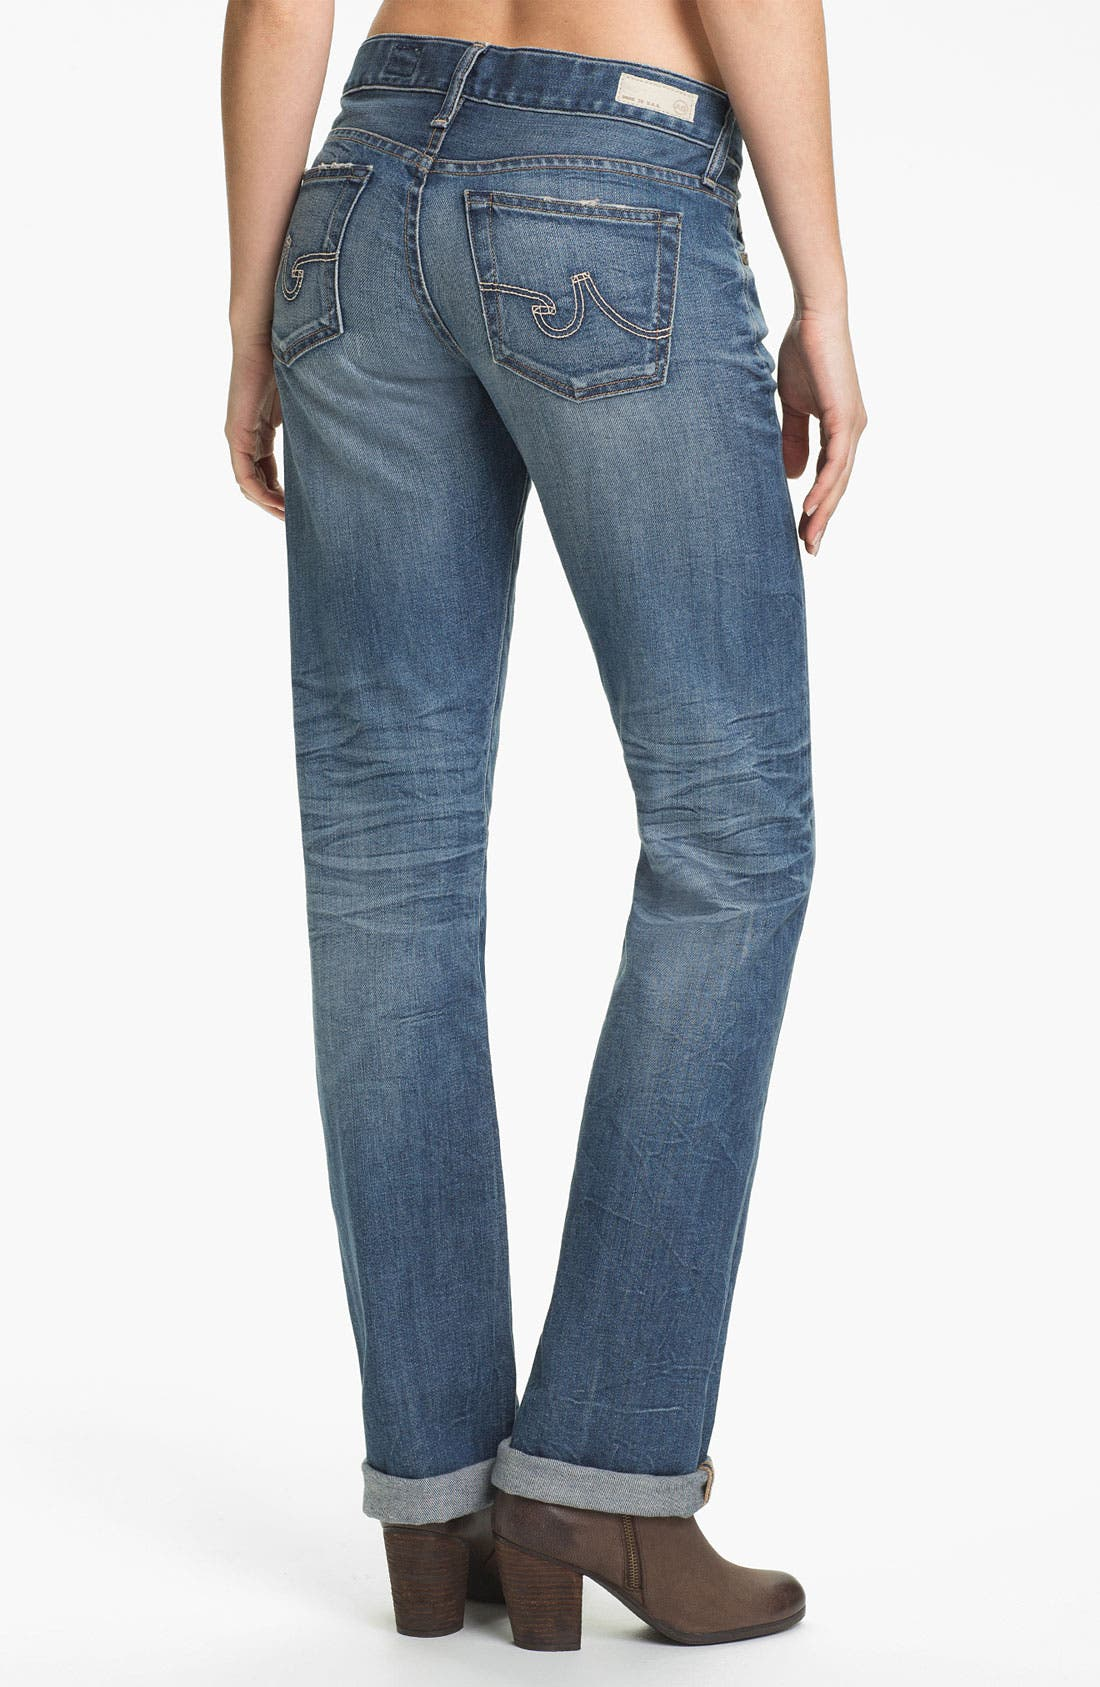 Alternate Image 3  - AG Jeans 'Tomboy' Relaxed Straight Leg Jeans (19-Year Mesa)